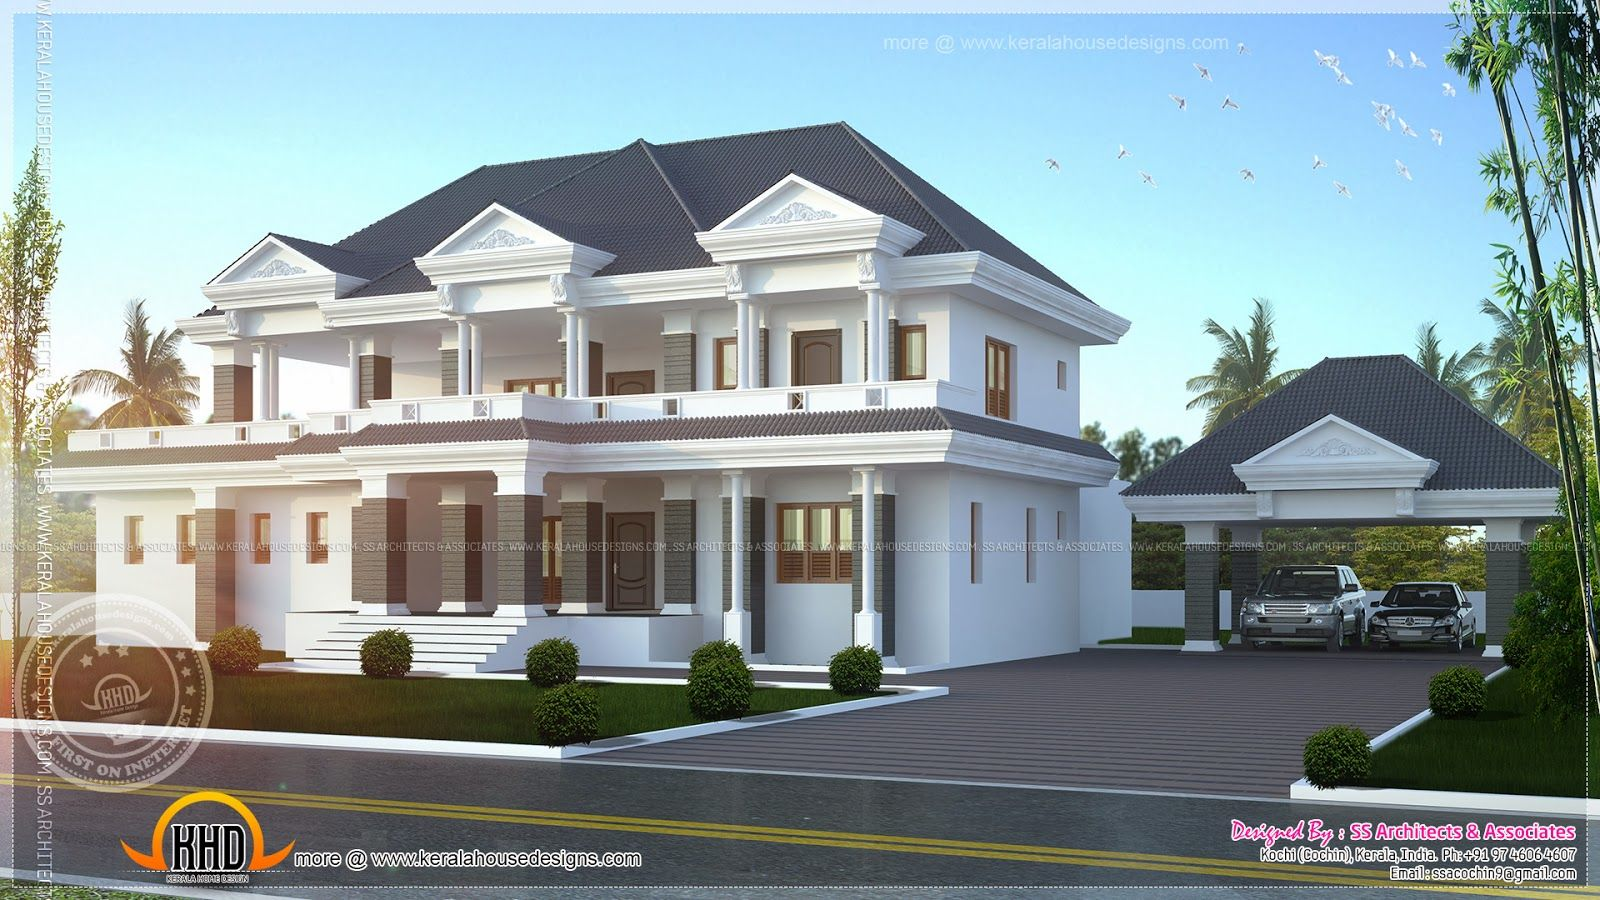 Luxury House Plans Posh Luxury Home Plan Audisb Luxury: luxury homes blueprints